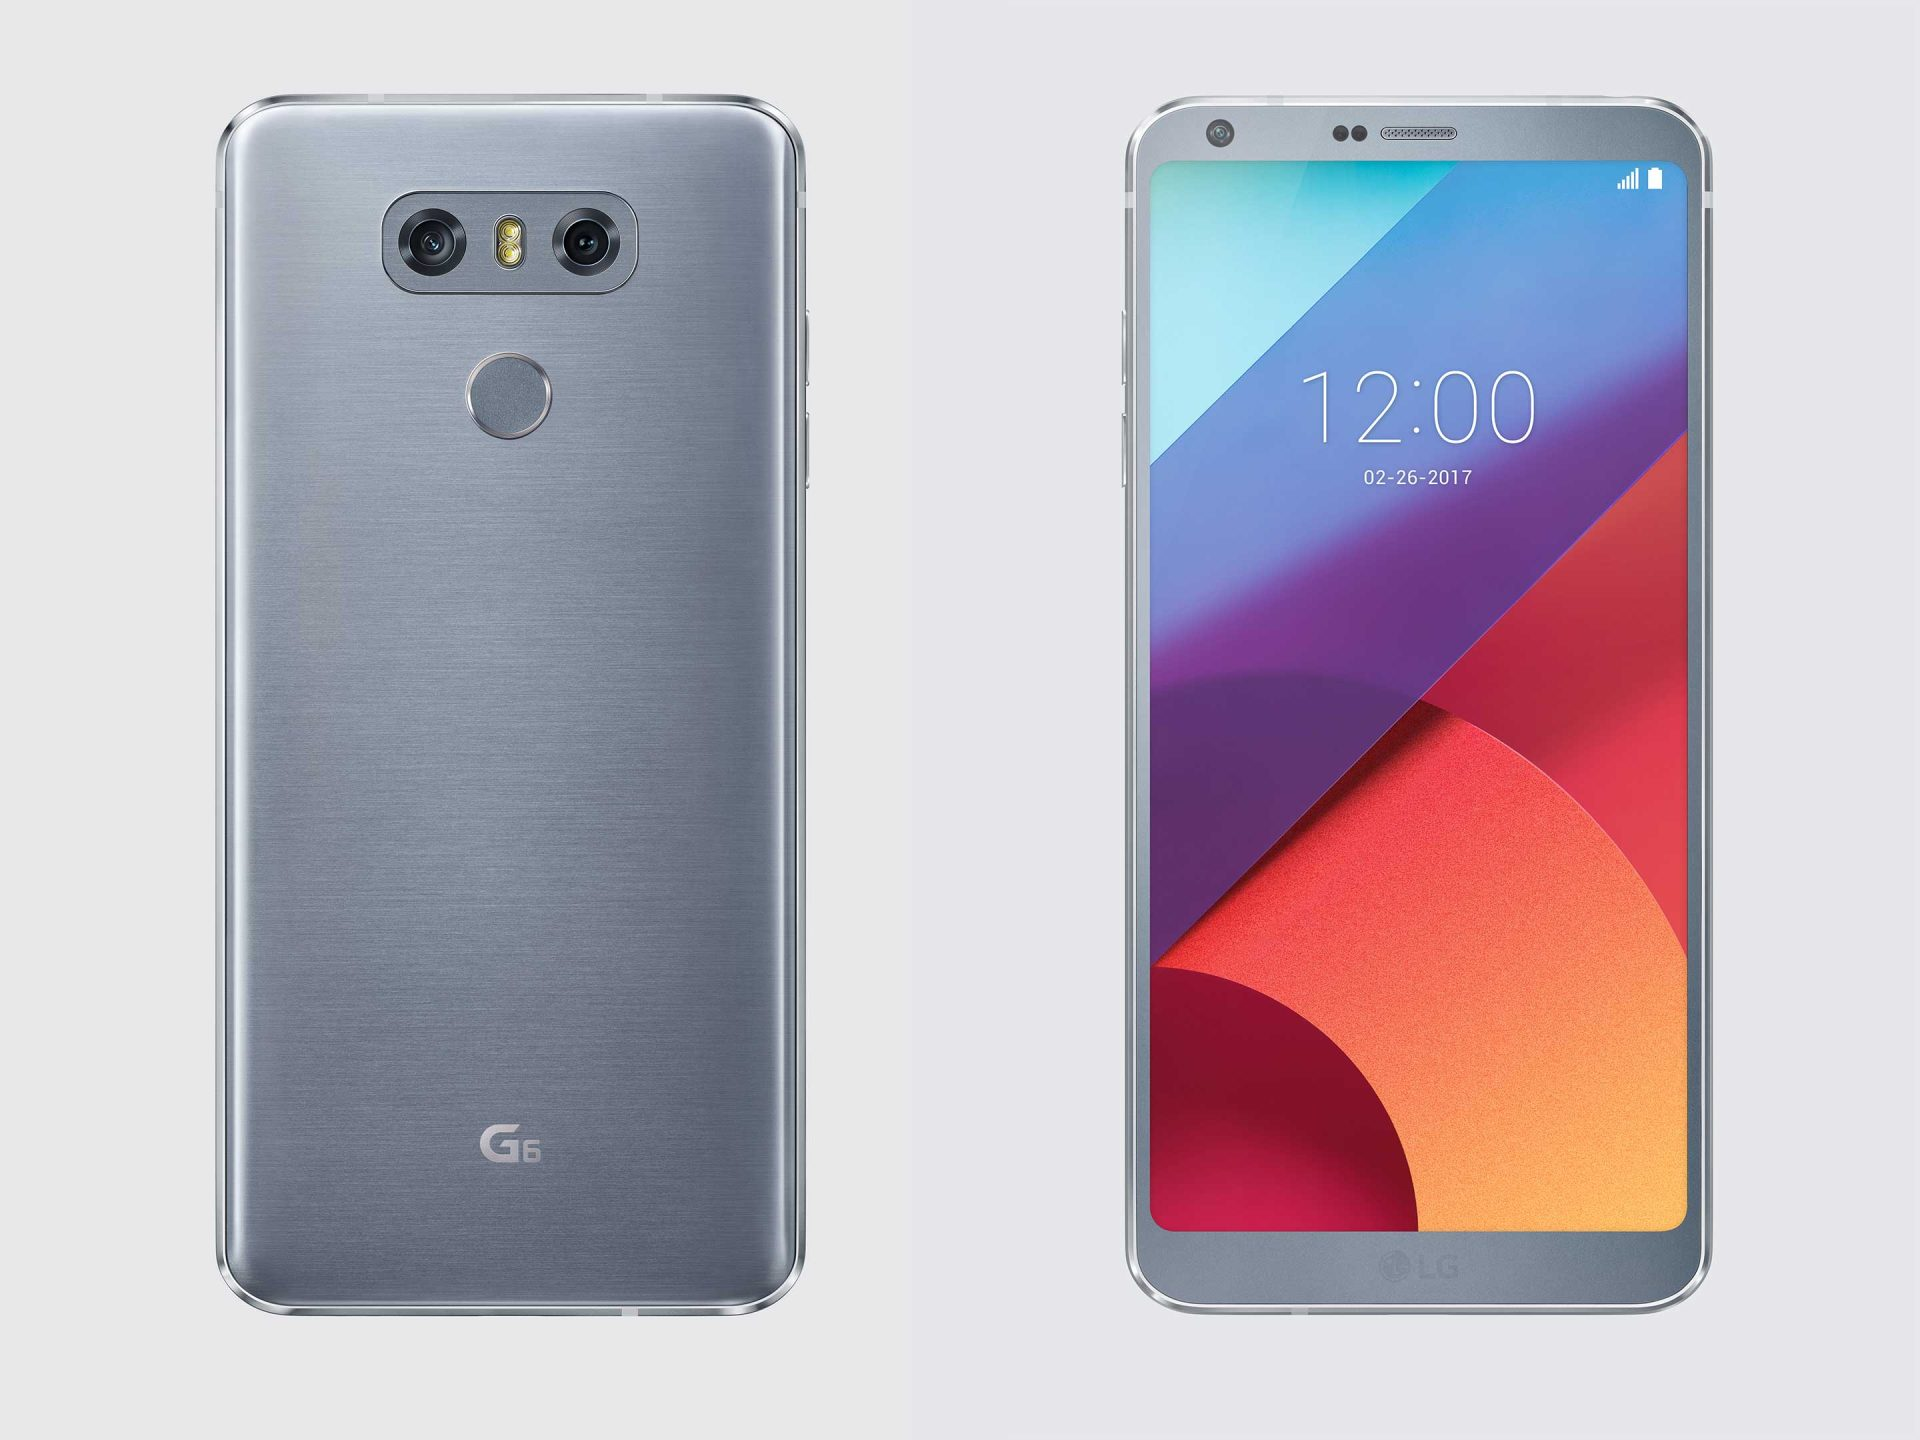 How to Unlock LG G6 using Unlock Codes | UnlockUnit